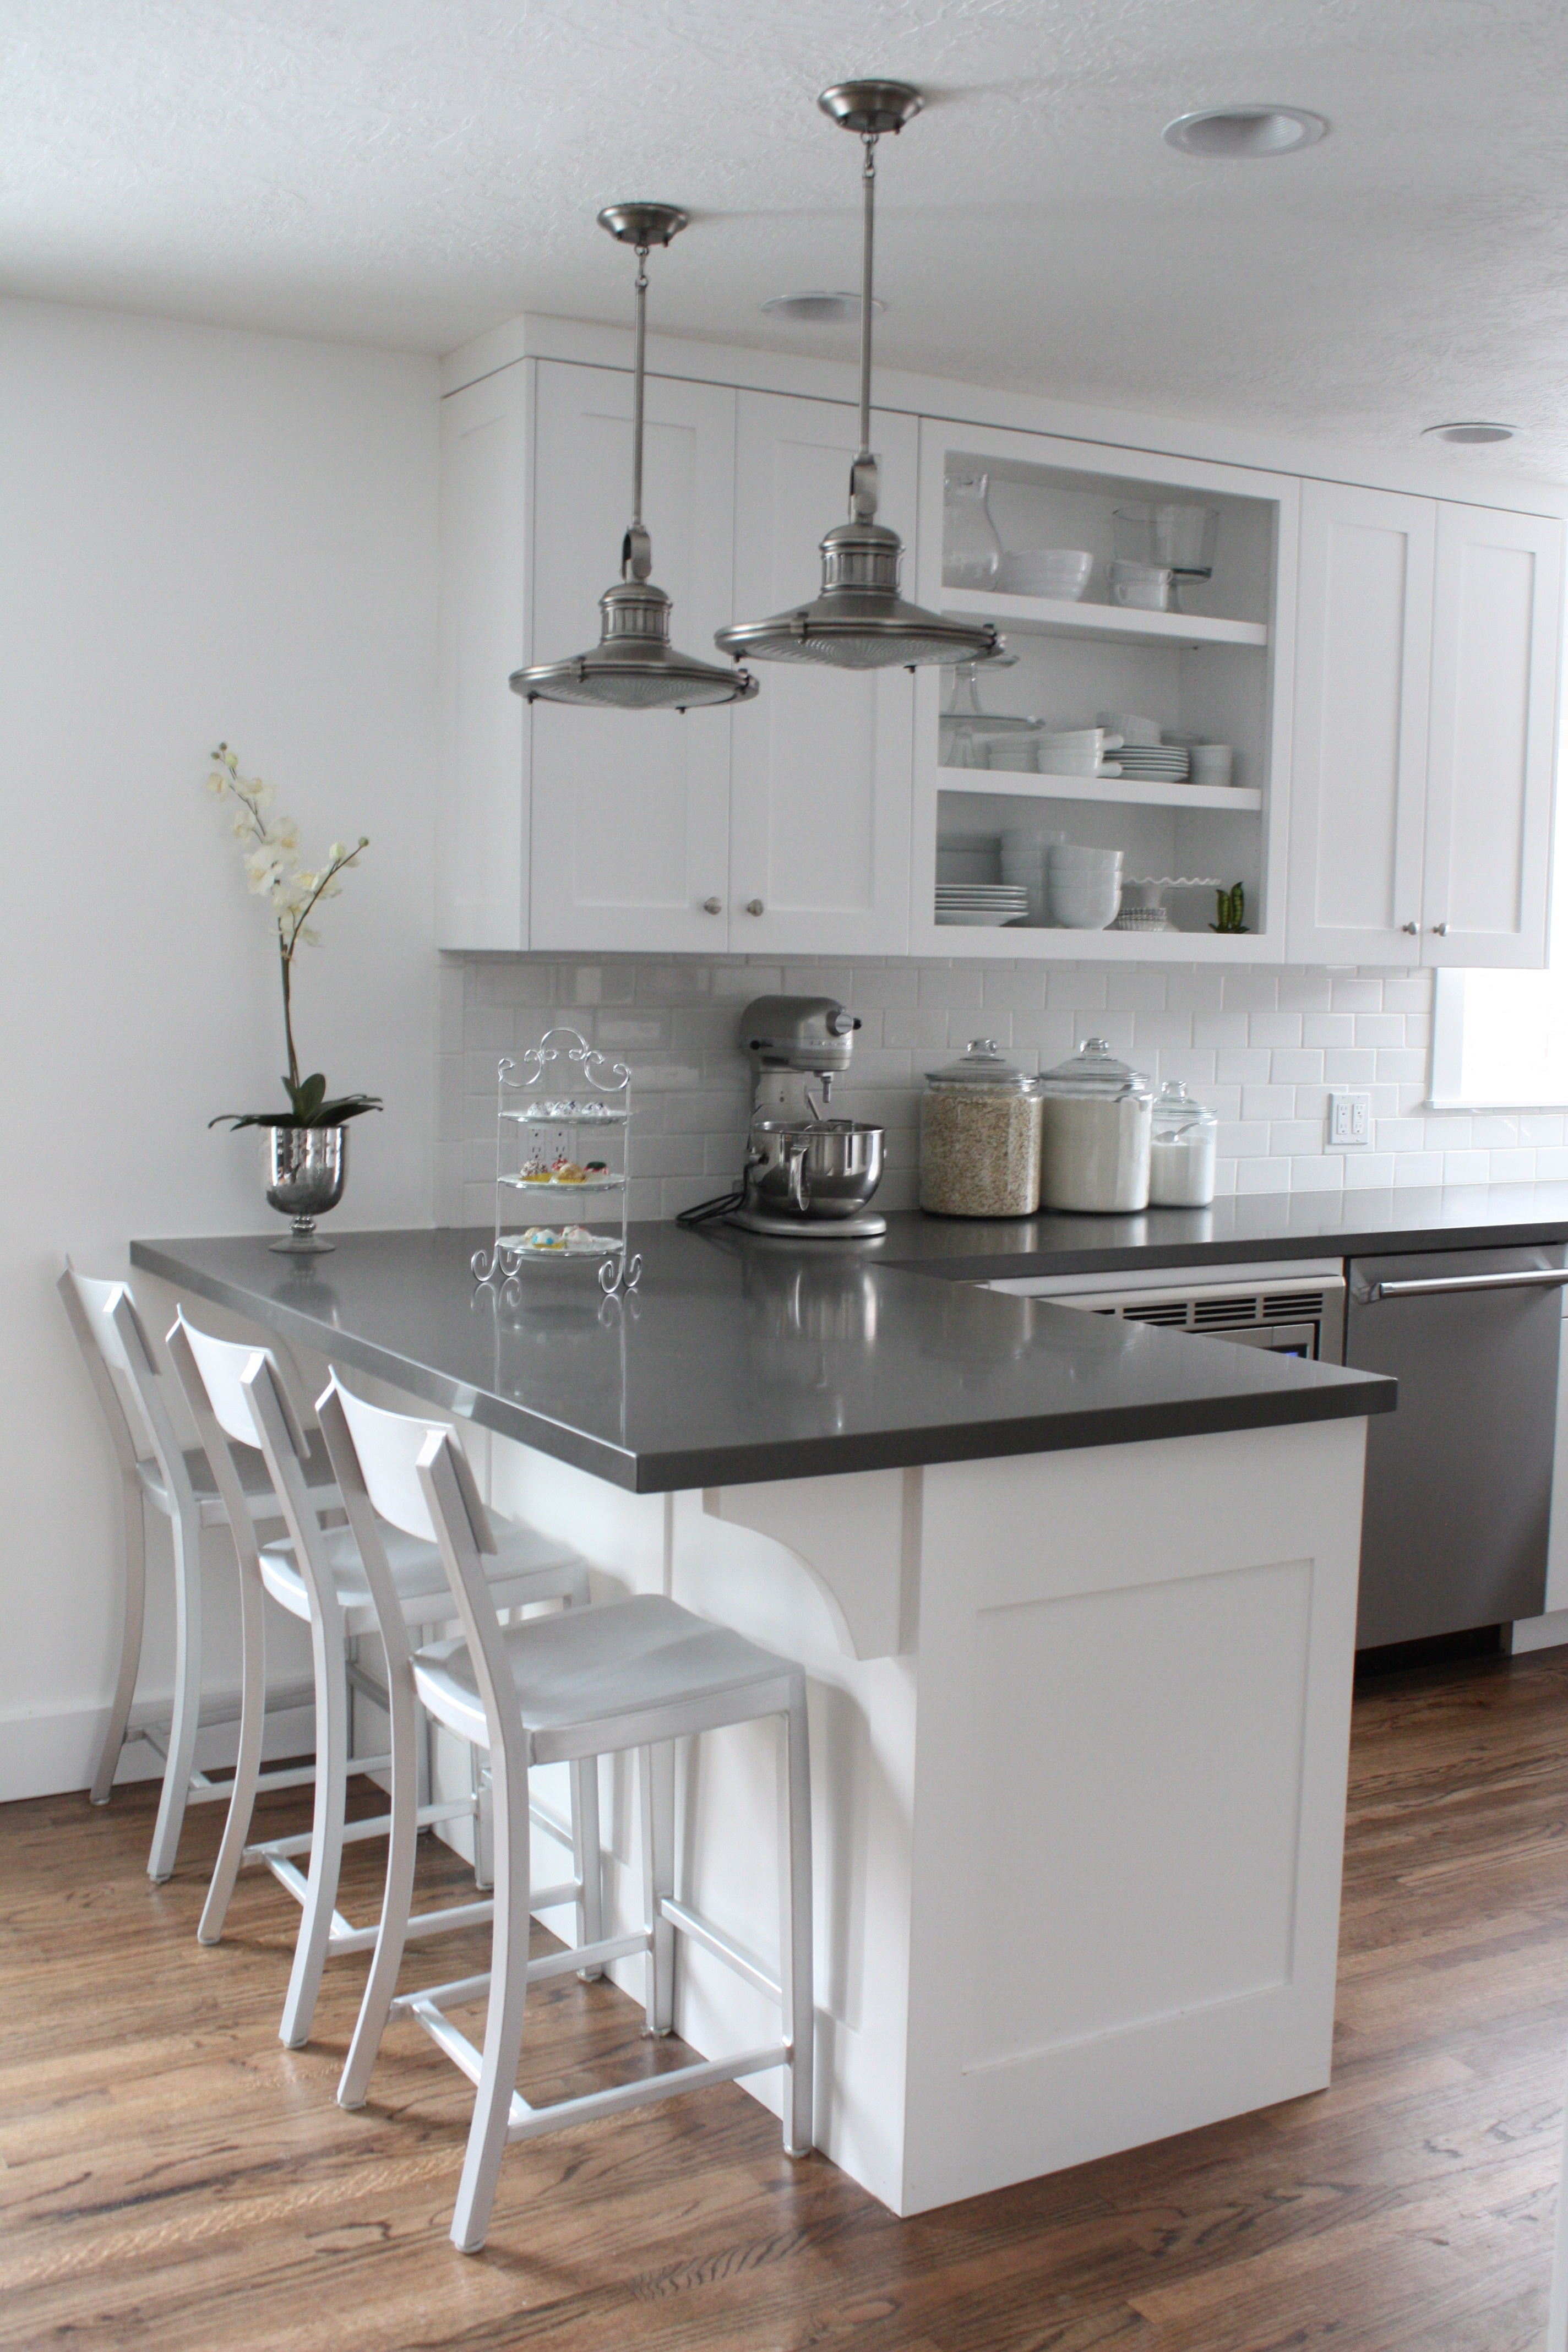 Cambria Quartz Countertops Pros and Cons Remodel